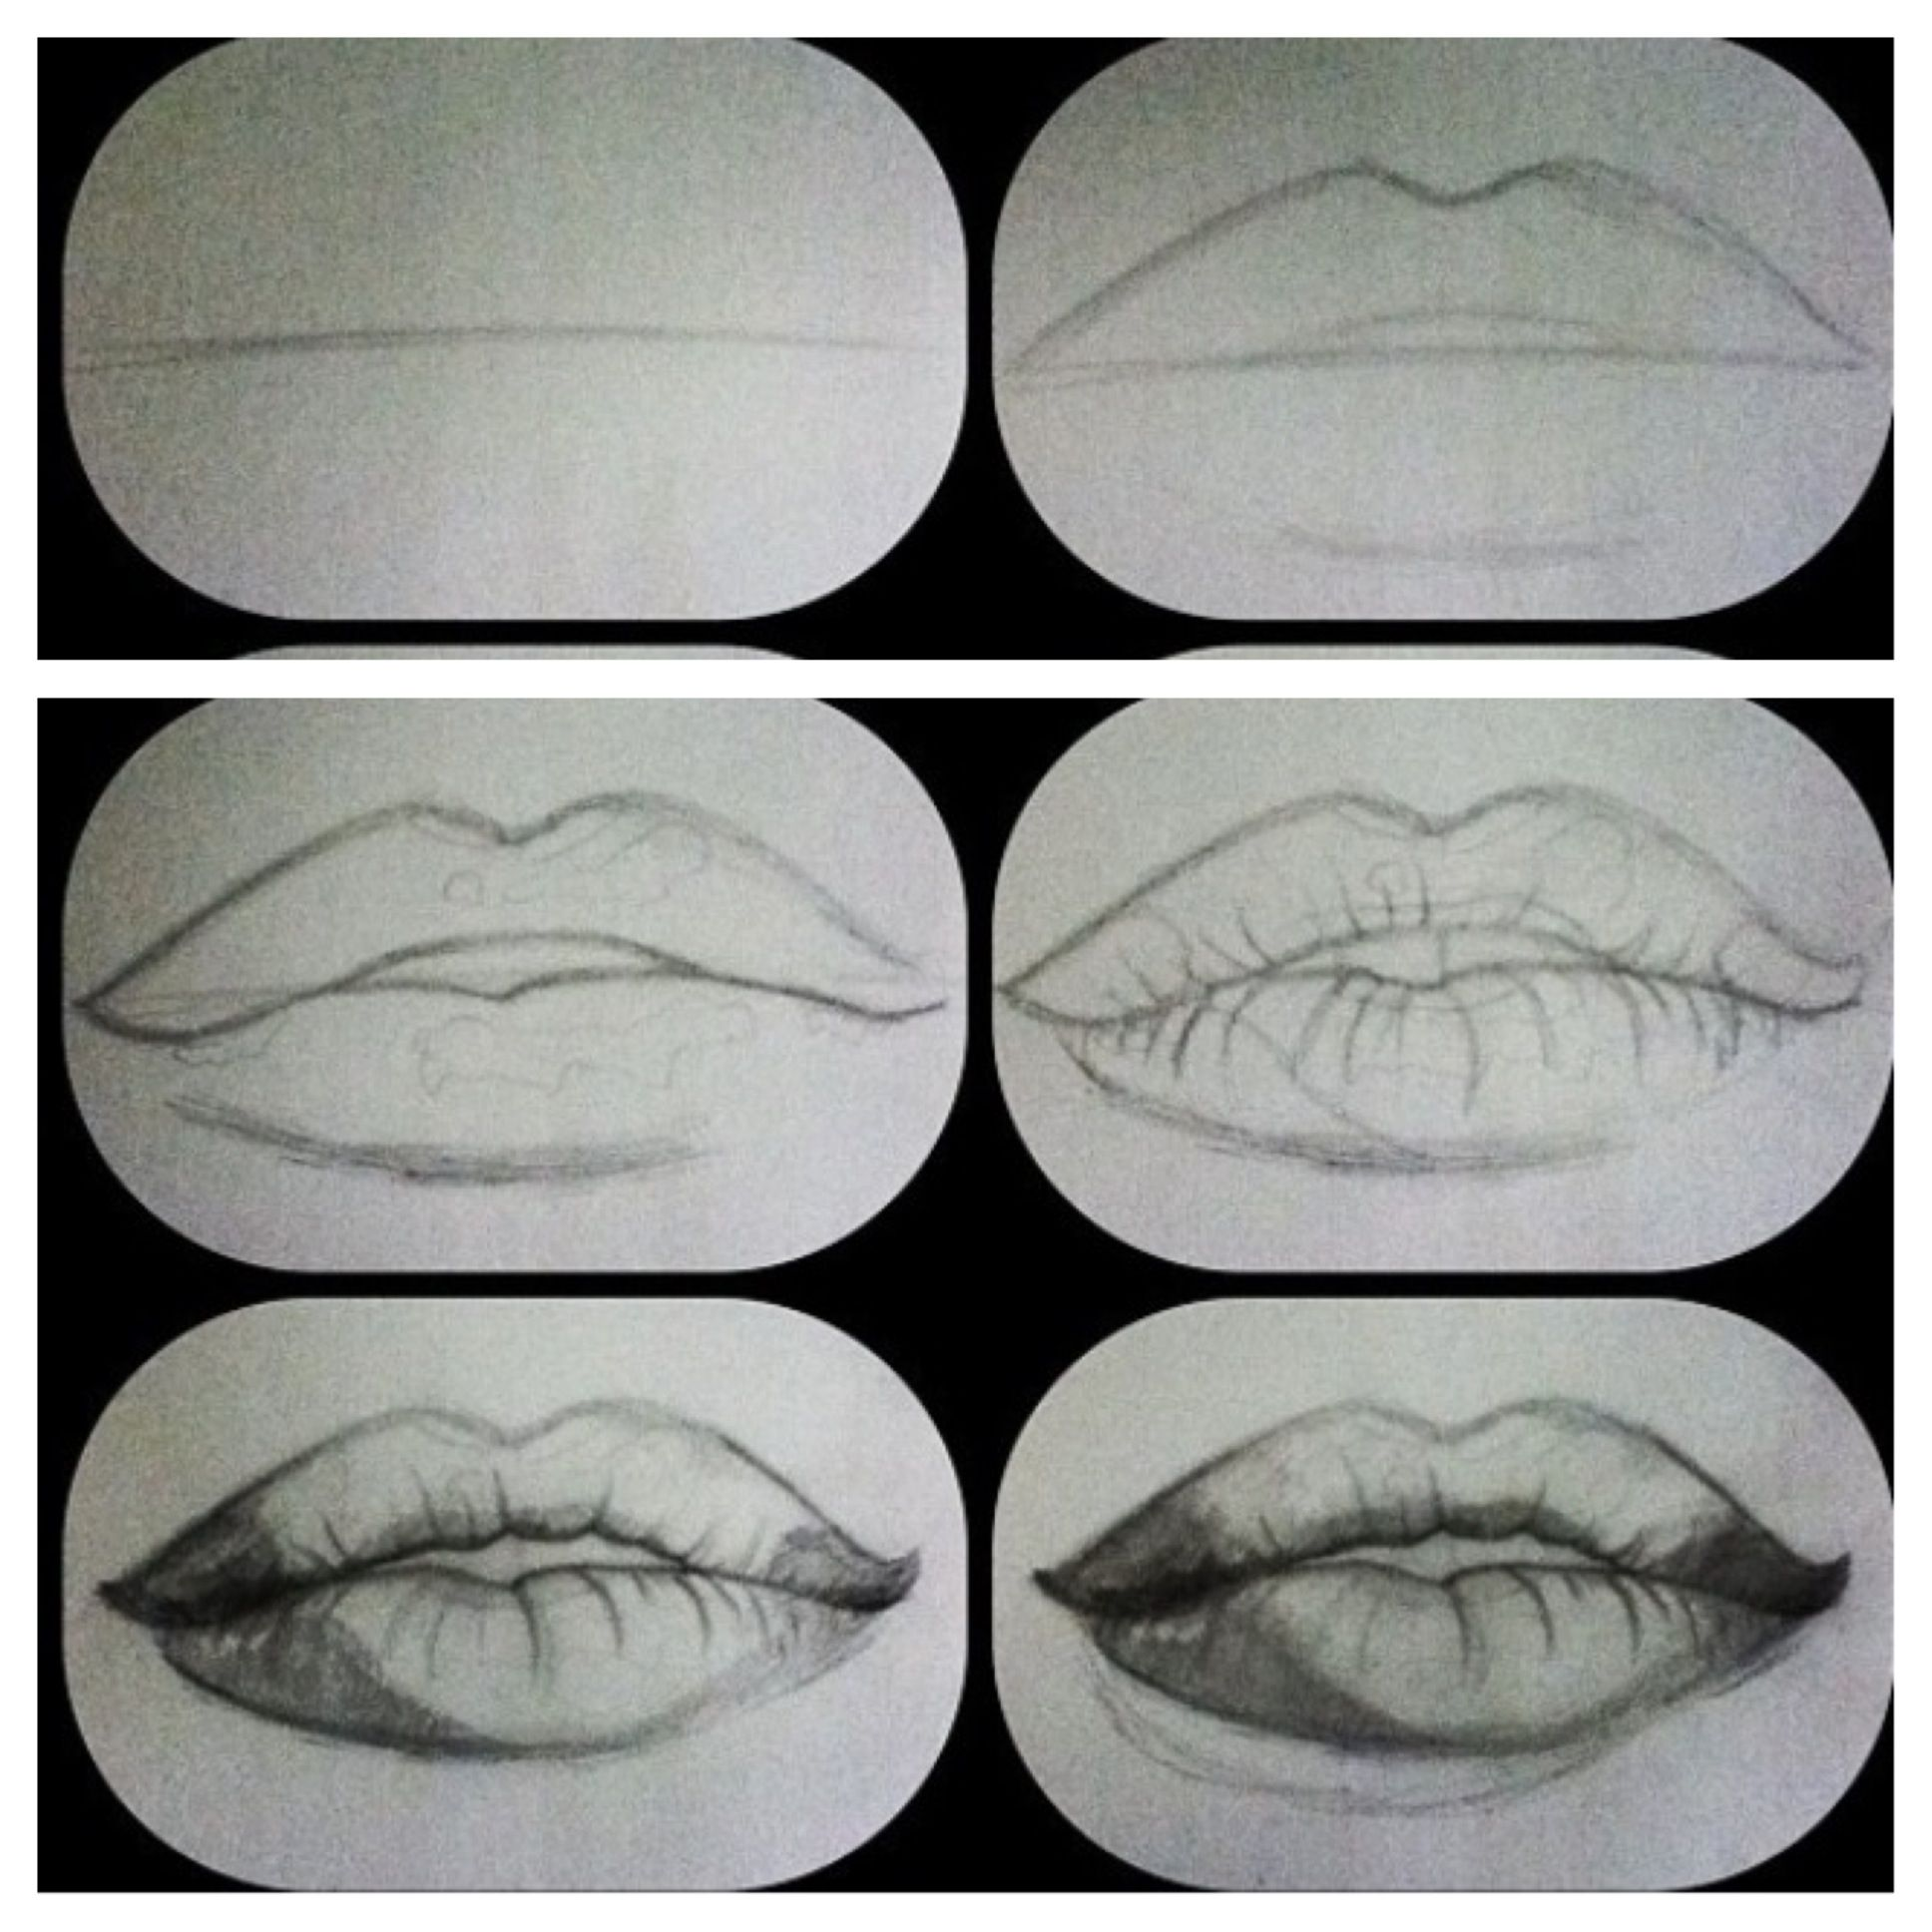 How to draw realistic lips | Artwork | Pinterest | Lips ...